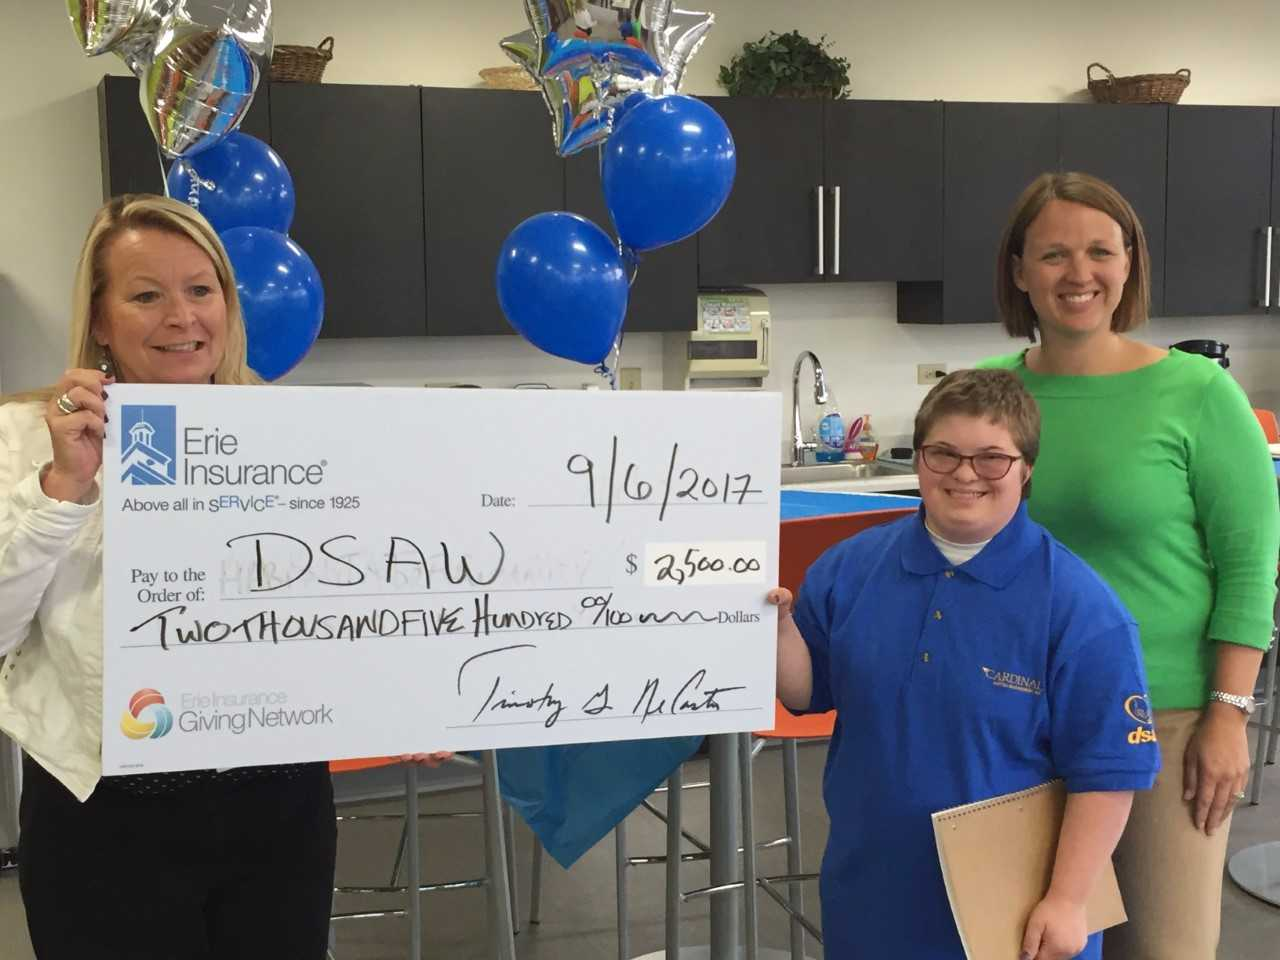 Self-advocate Michelle Levenhagen accepts a sponsorship from Erie Insurance for our Statewide Awareness Walk!